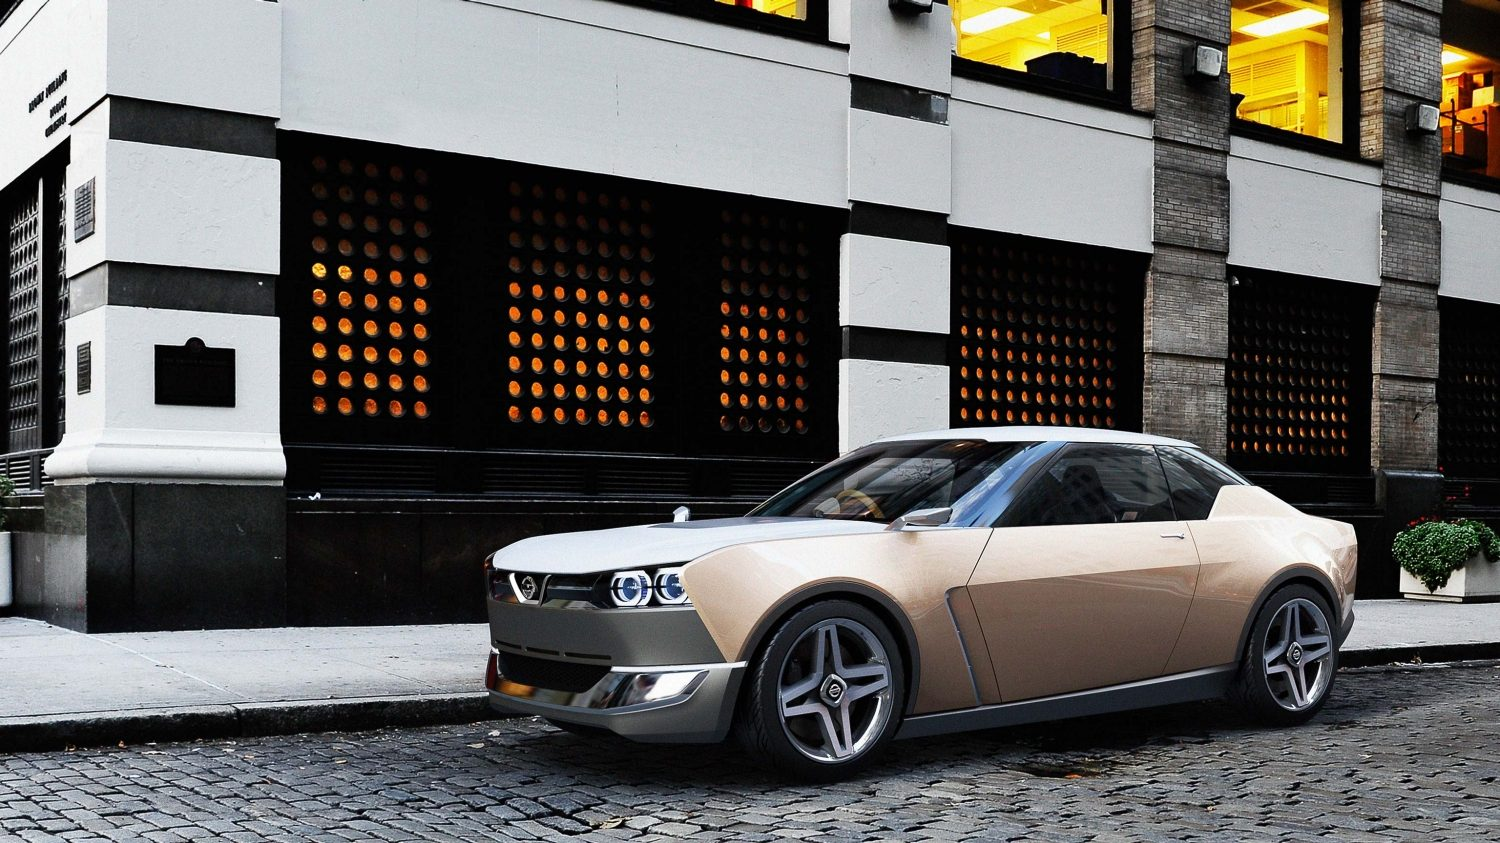 Nissan IDX Freeflow Concept low 3/4 rear parked in city.